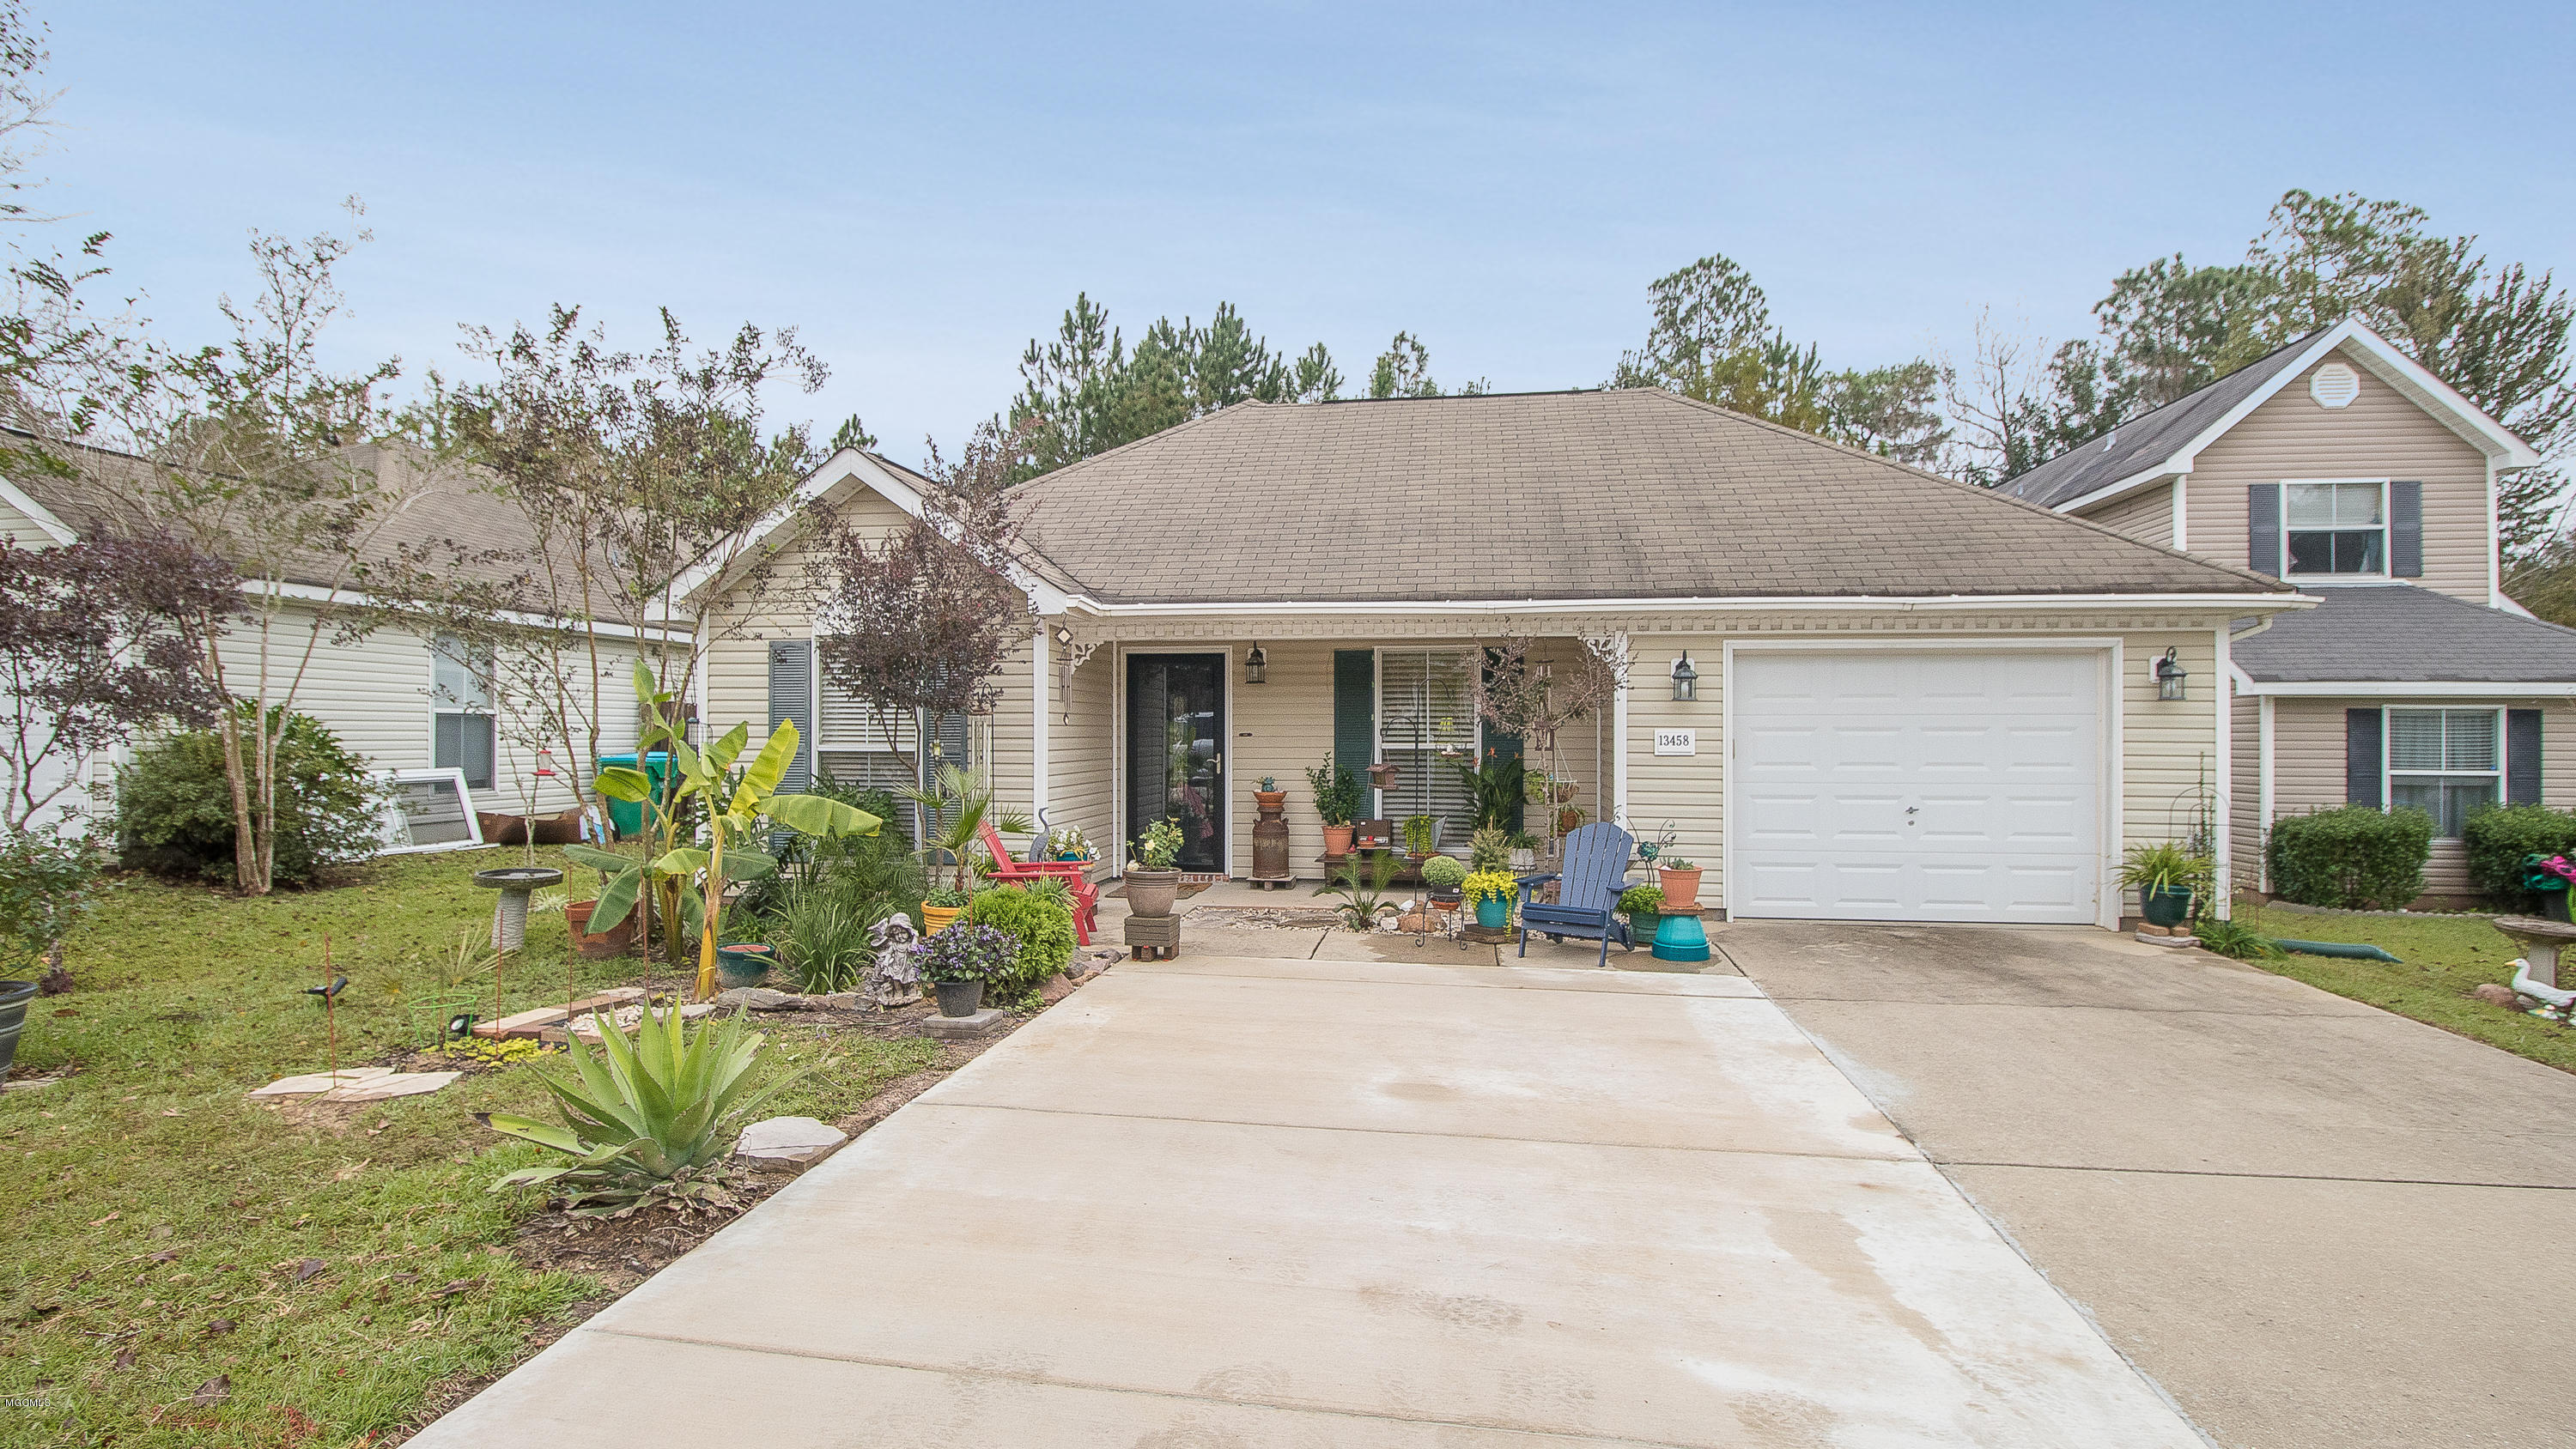 13458 Addison Ave, Gulfport, Mississippi 39503, 3 Bedrooms Bedrooms, ,2 BathroomsBathrooms,Single-family,For Sale,Addison,341162